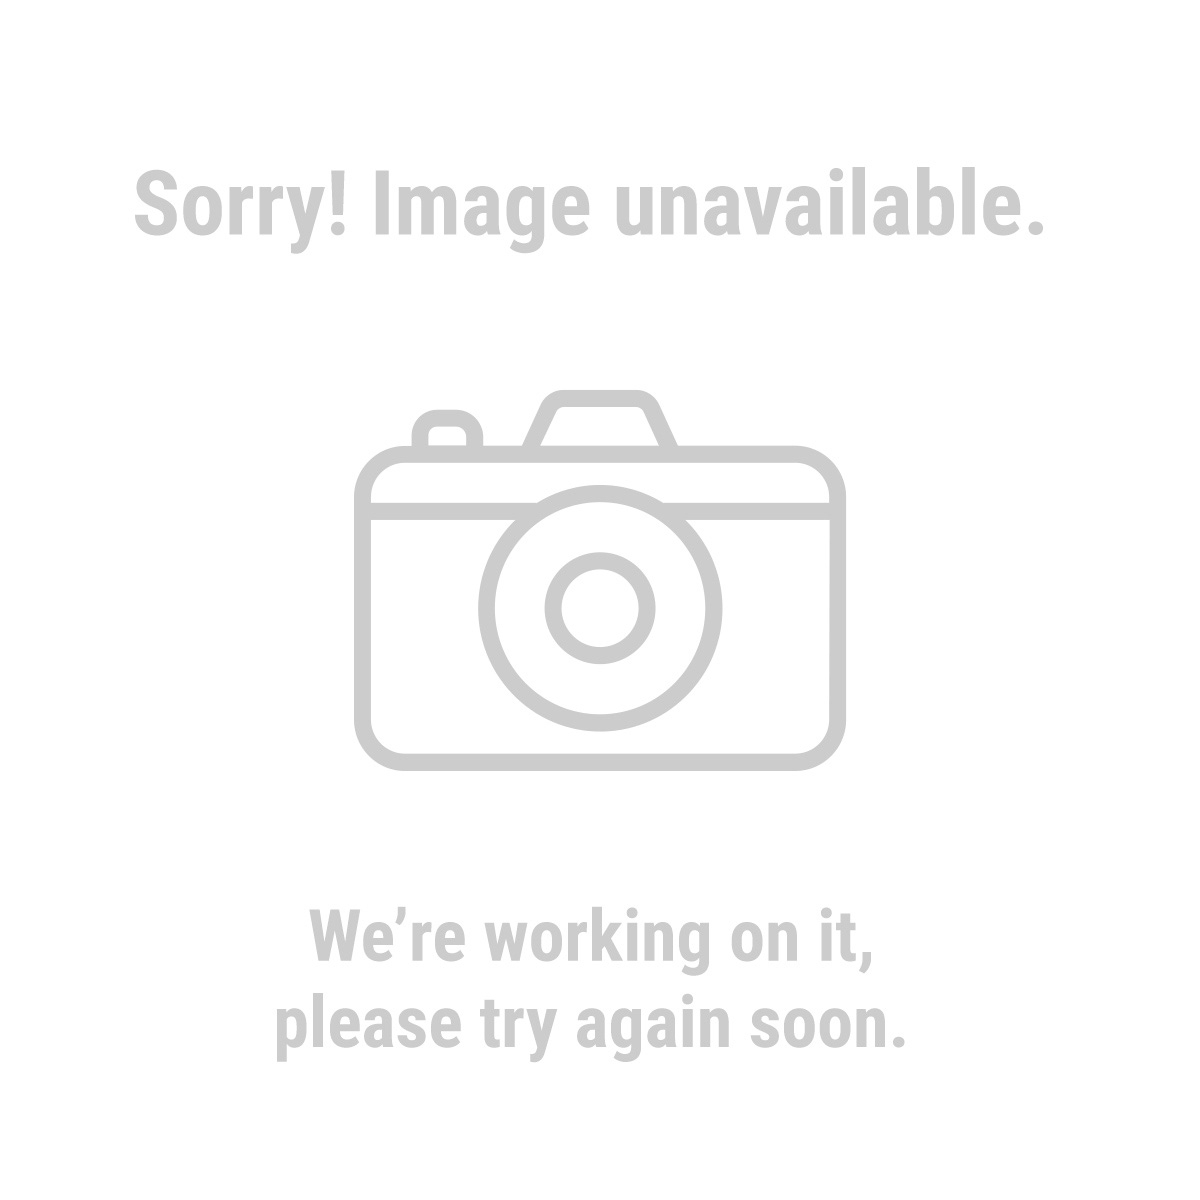 Central Pneumatic 61939 50 ft. x 3/8 in. Heavy Duty Premium Rubber Air Hose